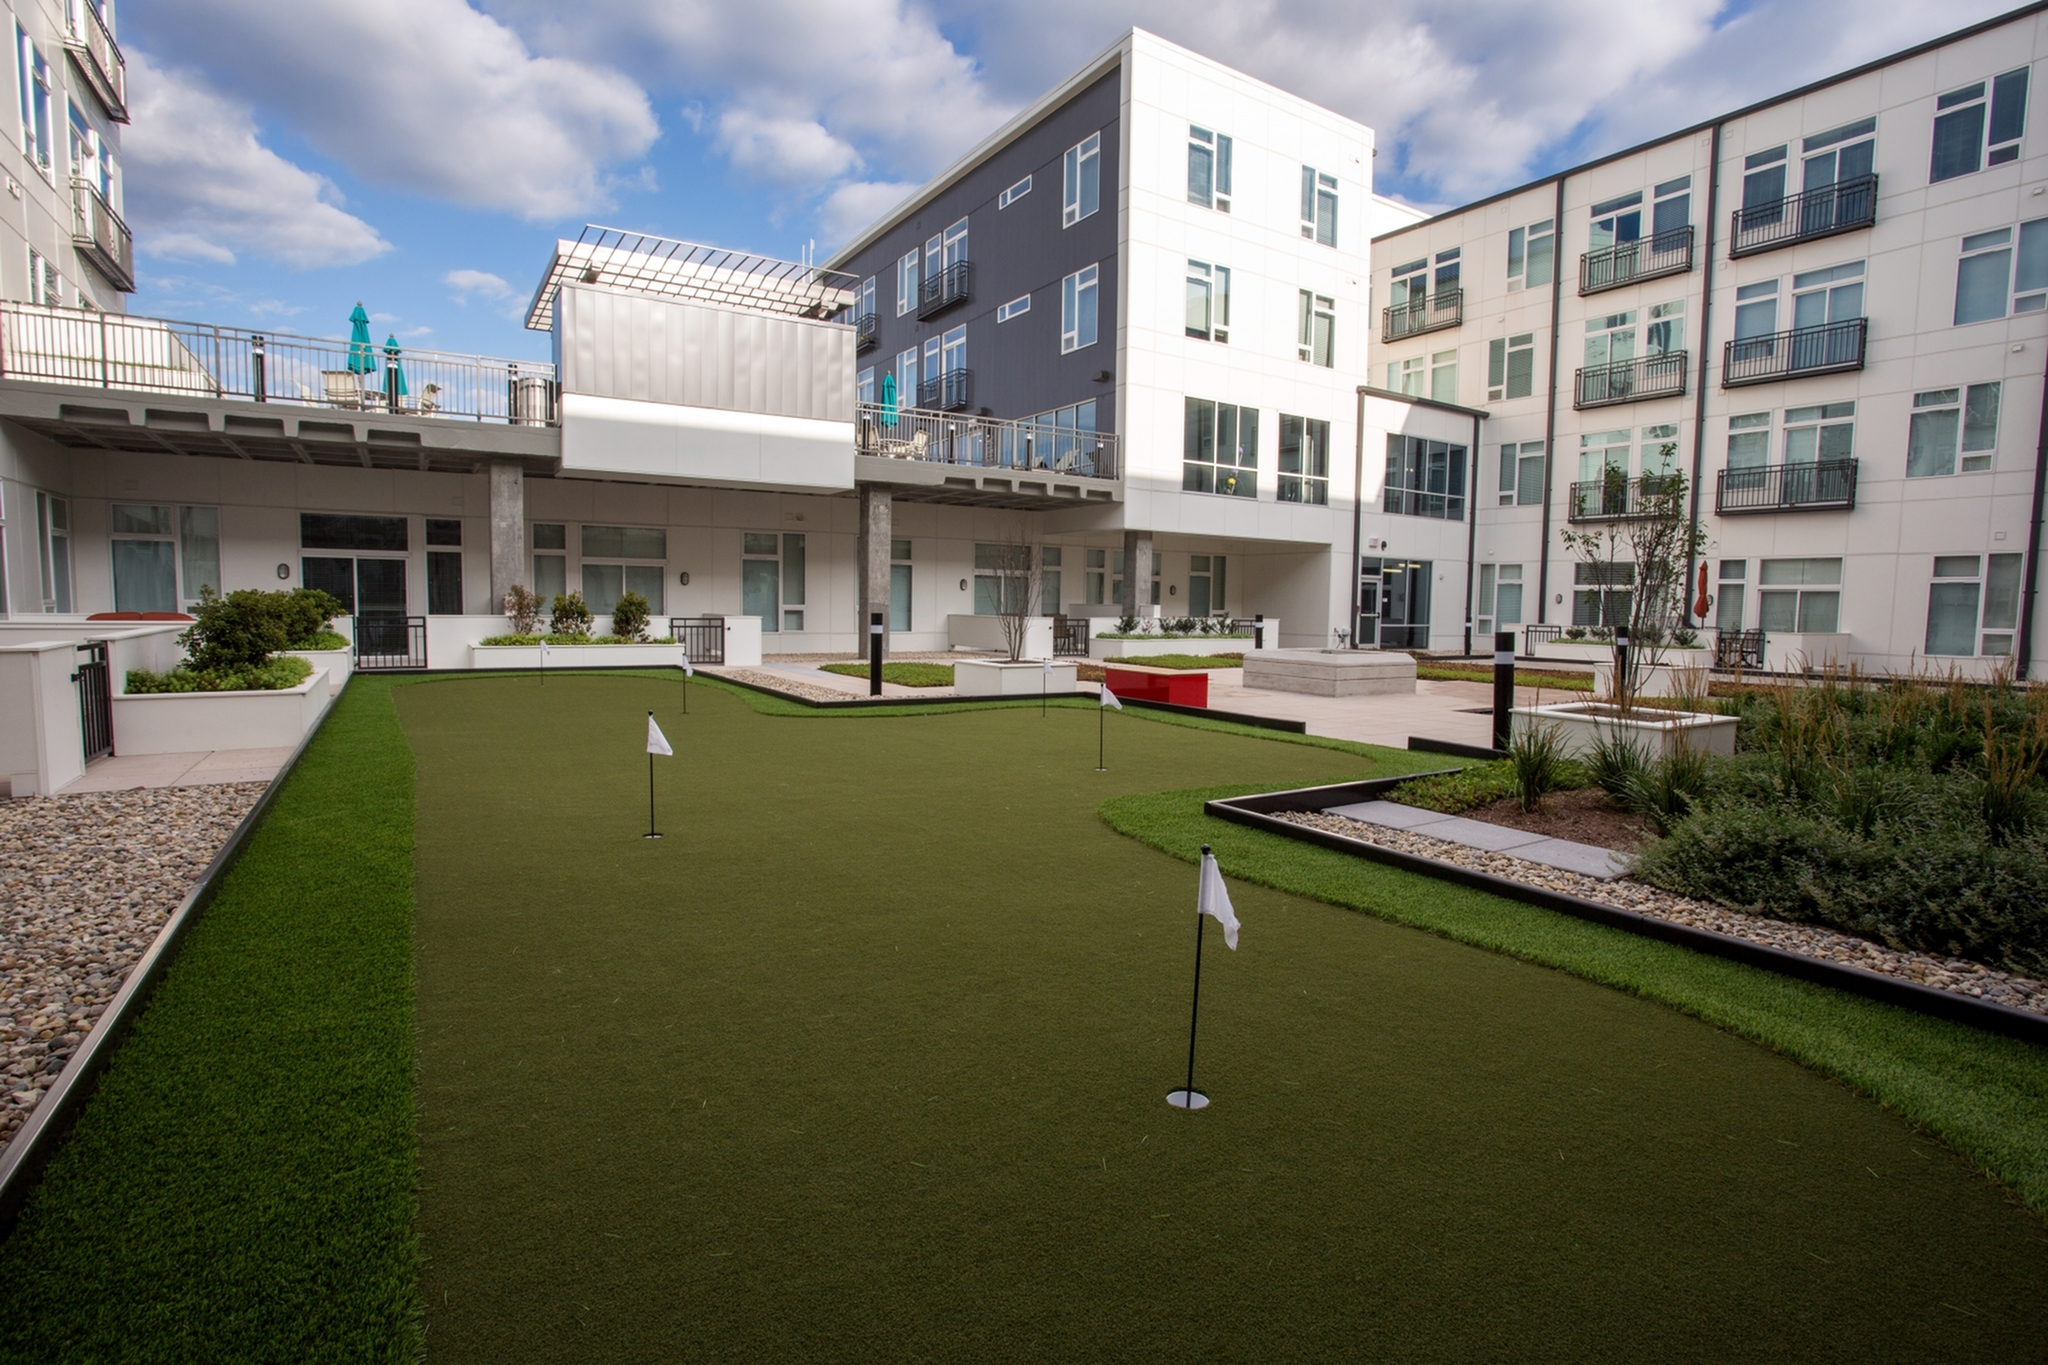 Image of Active Courtyard featuring a Bocce Court and Putting Green for Artistry